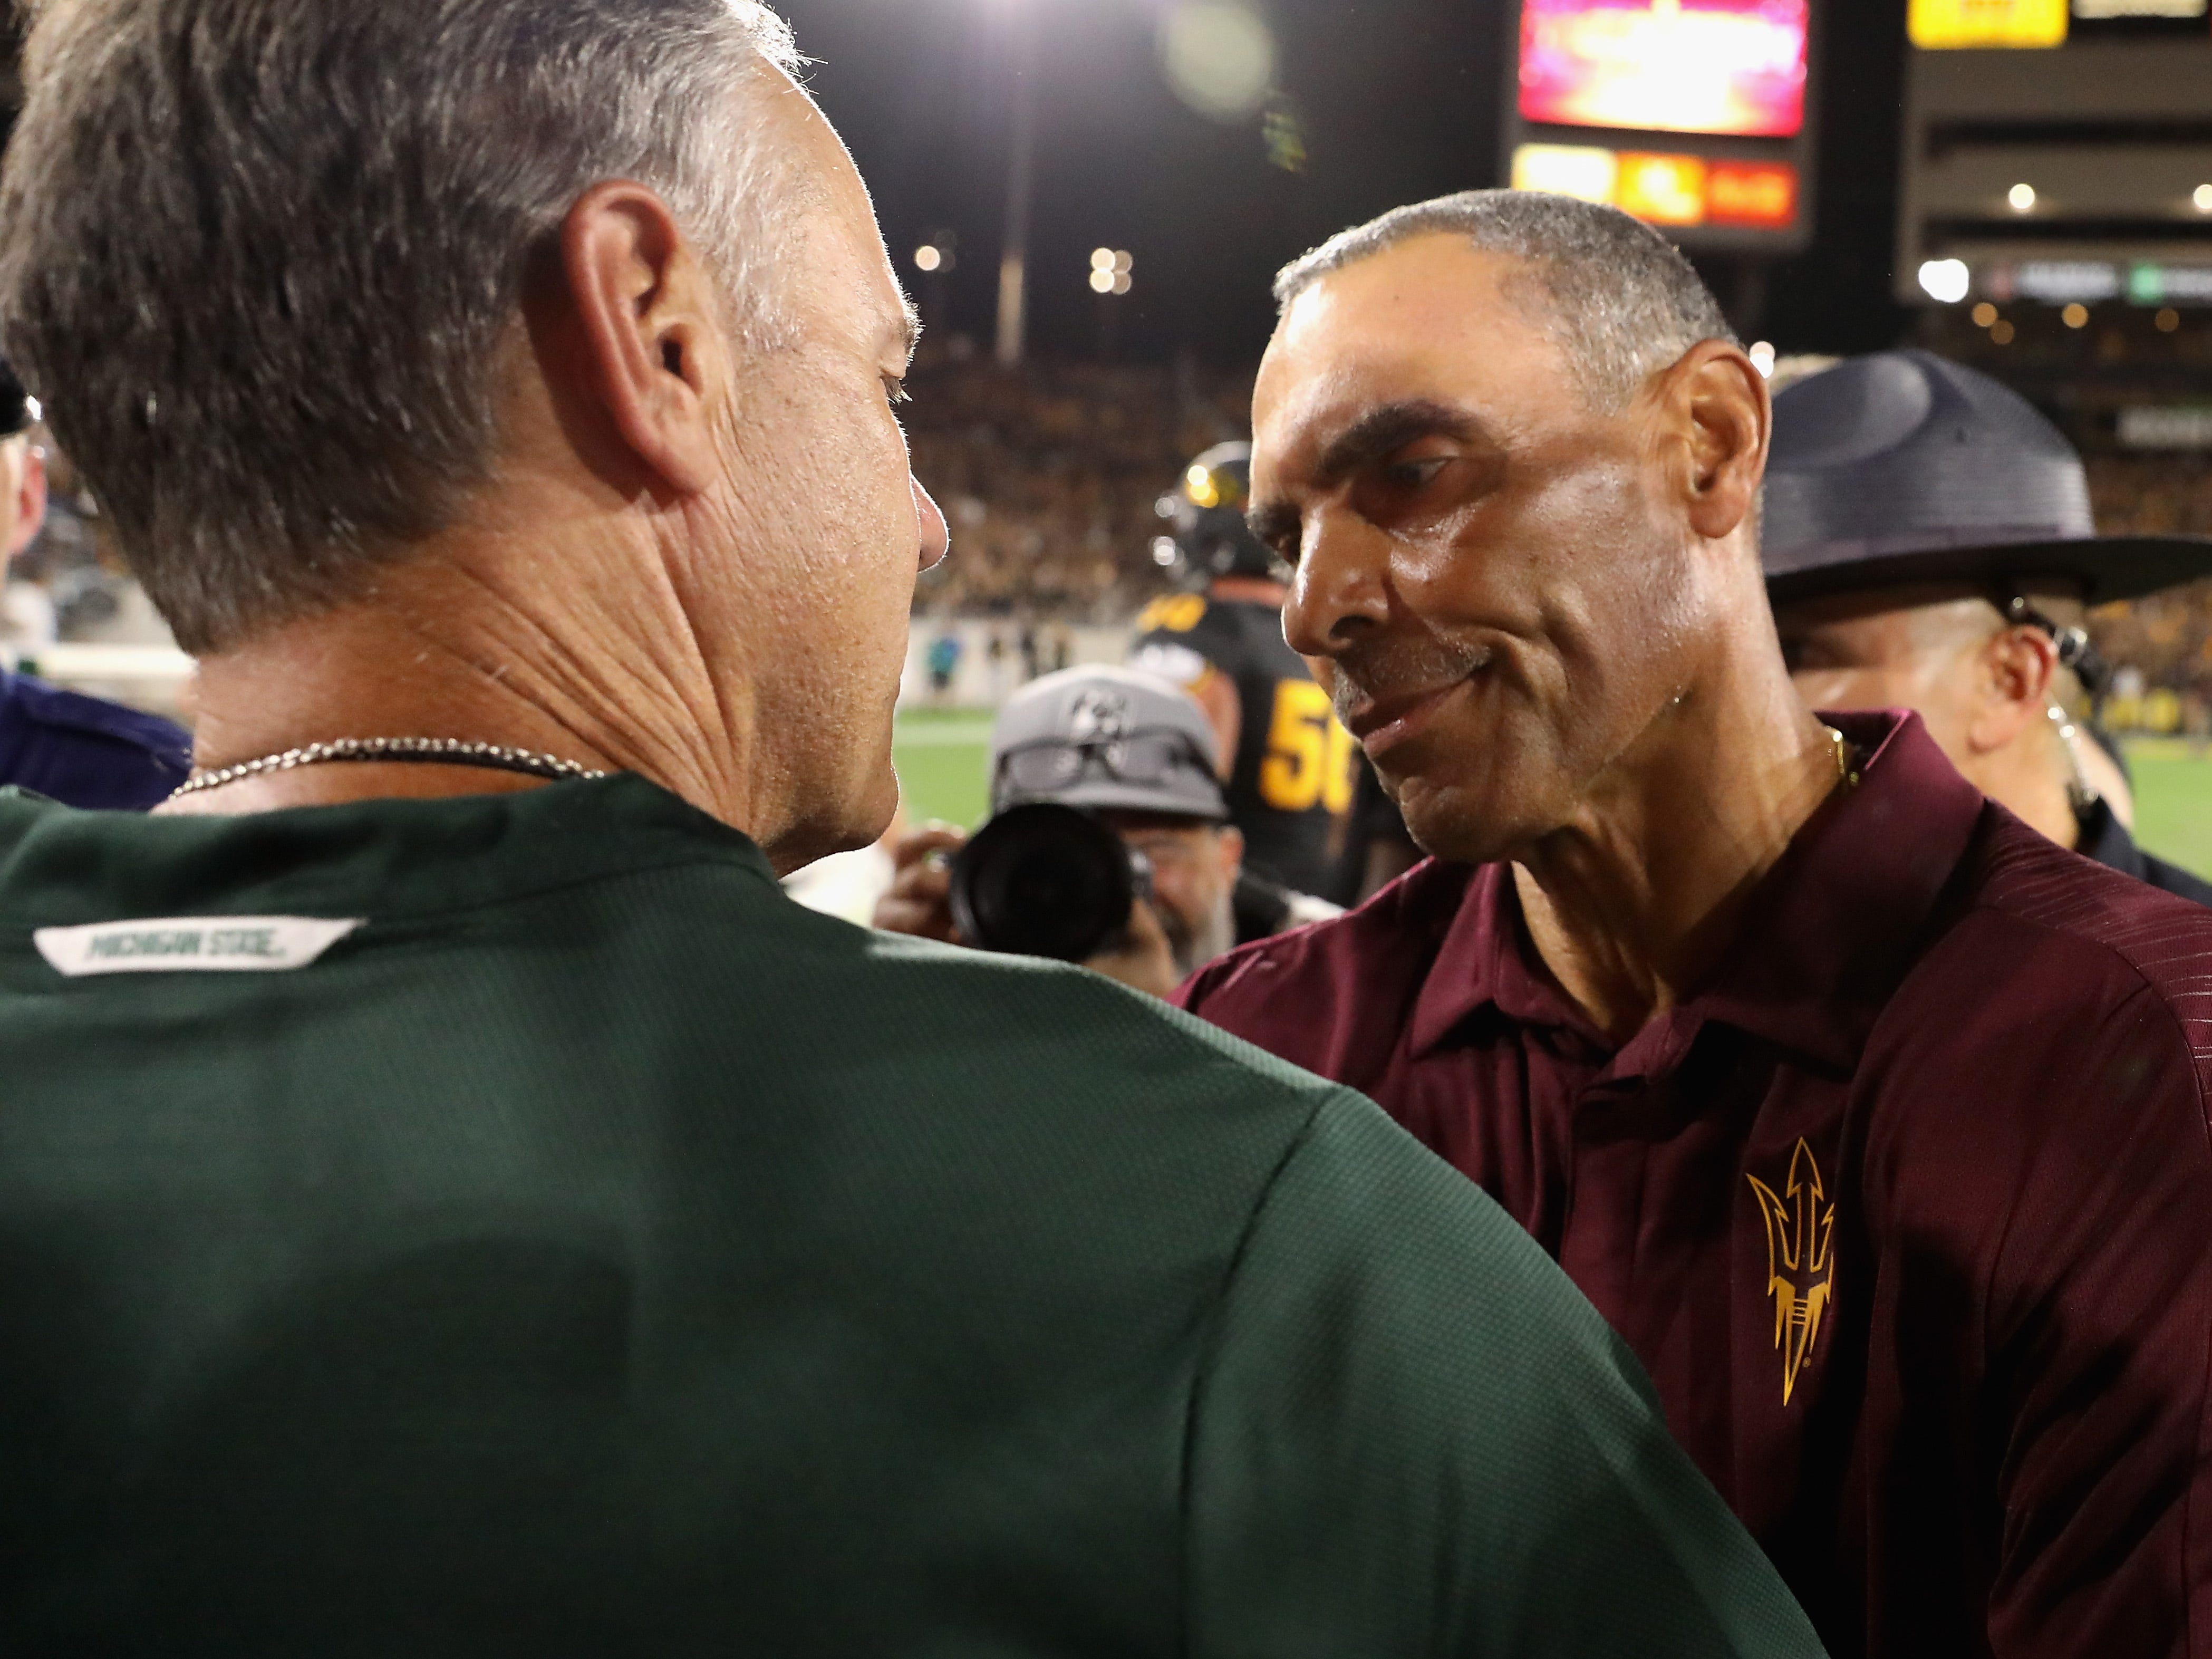 Head coach Herm Edwards (R) of the Arizona State Sun Devils greets head coach Mark Dantonio of the Michigan State Spartans following the college football game at Sun Devil Stadium on September 8, 2018 in Tempe, Arizona.  The Sun Devils defeated the Spartans 16-13.